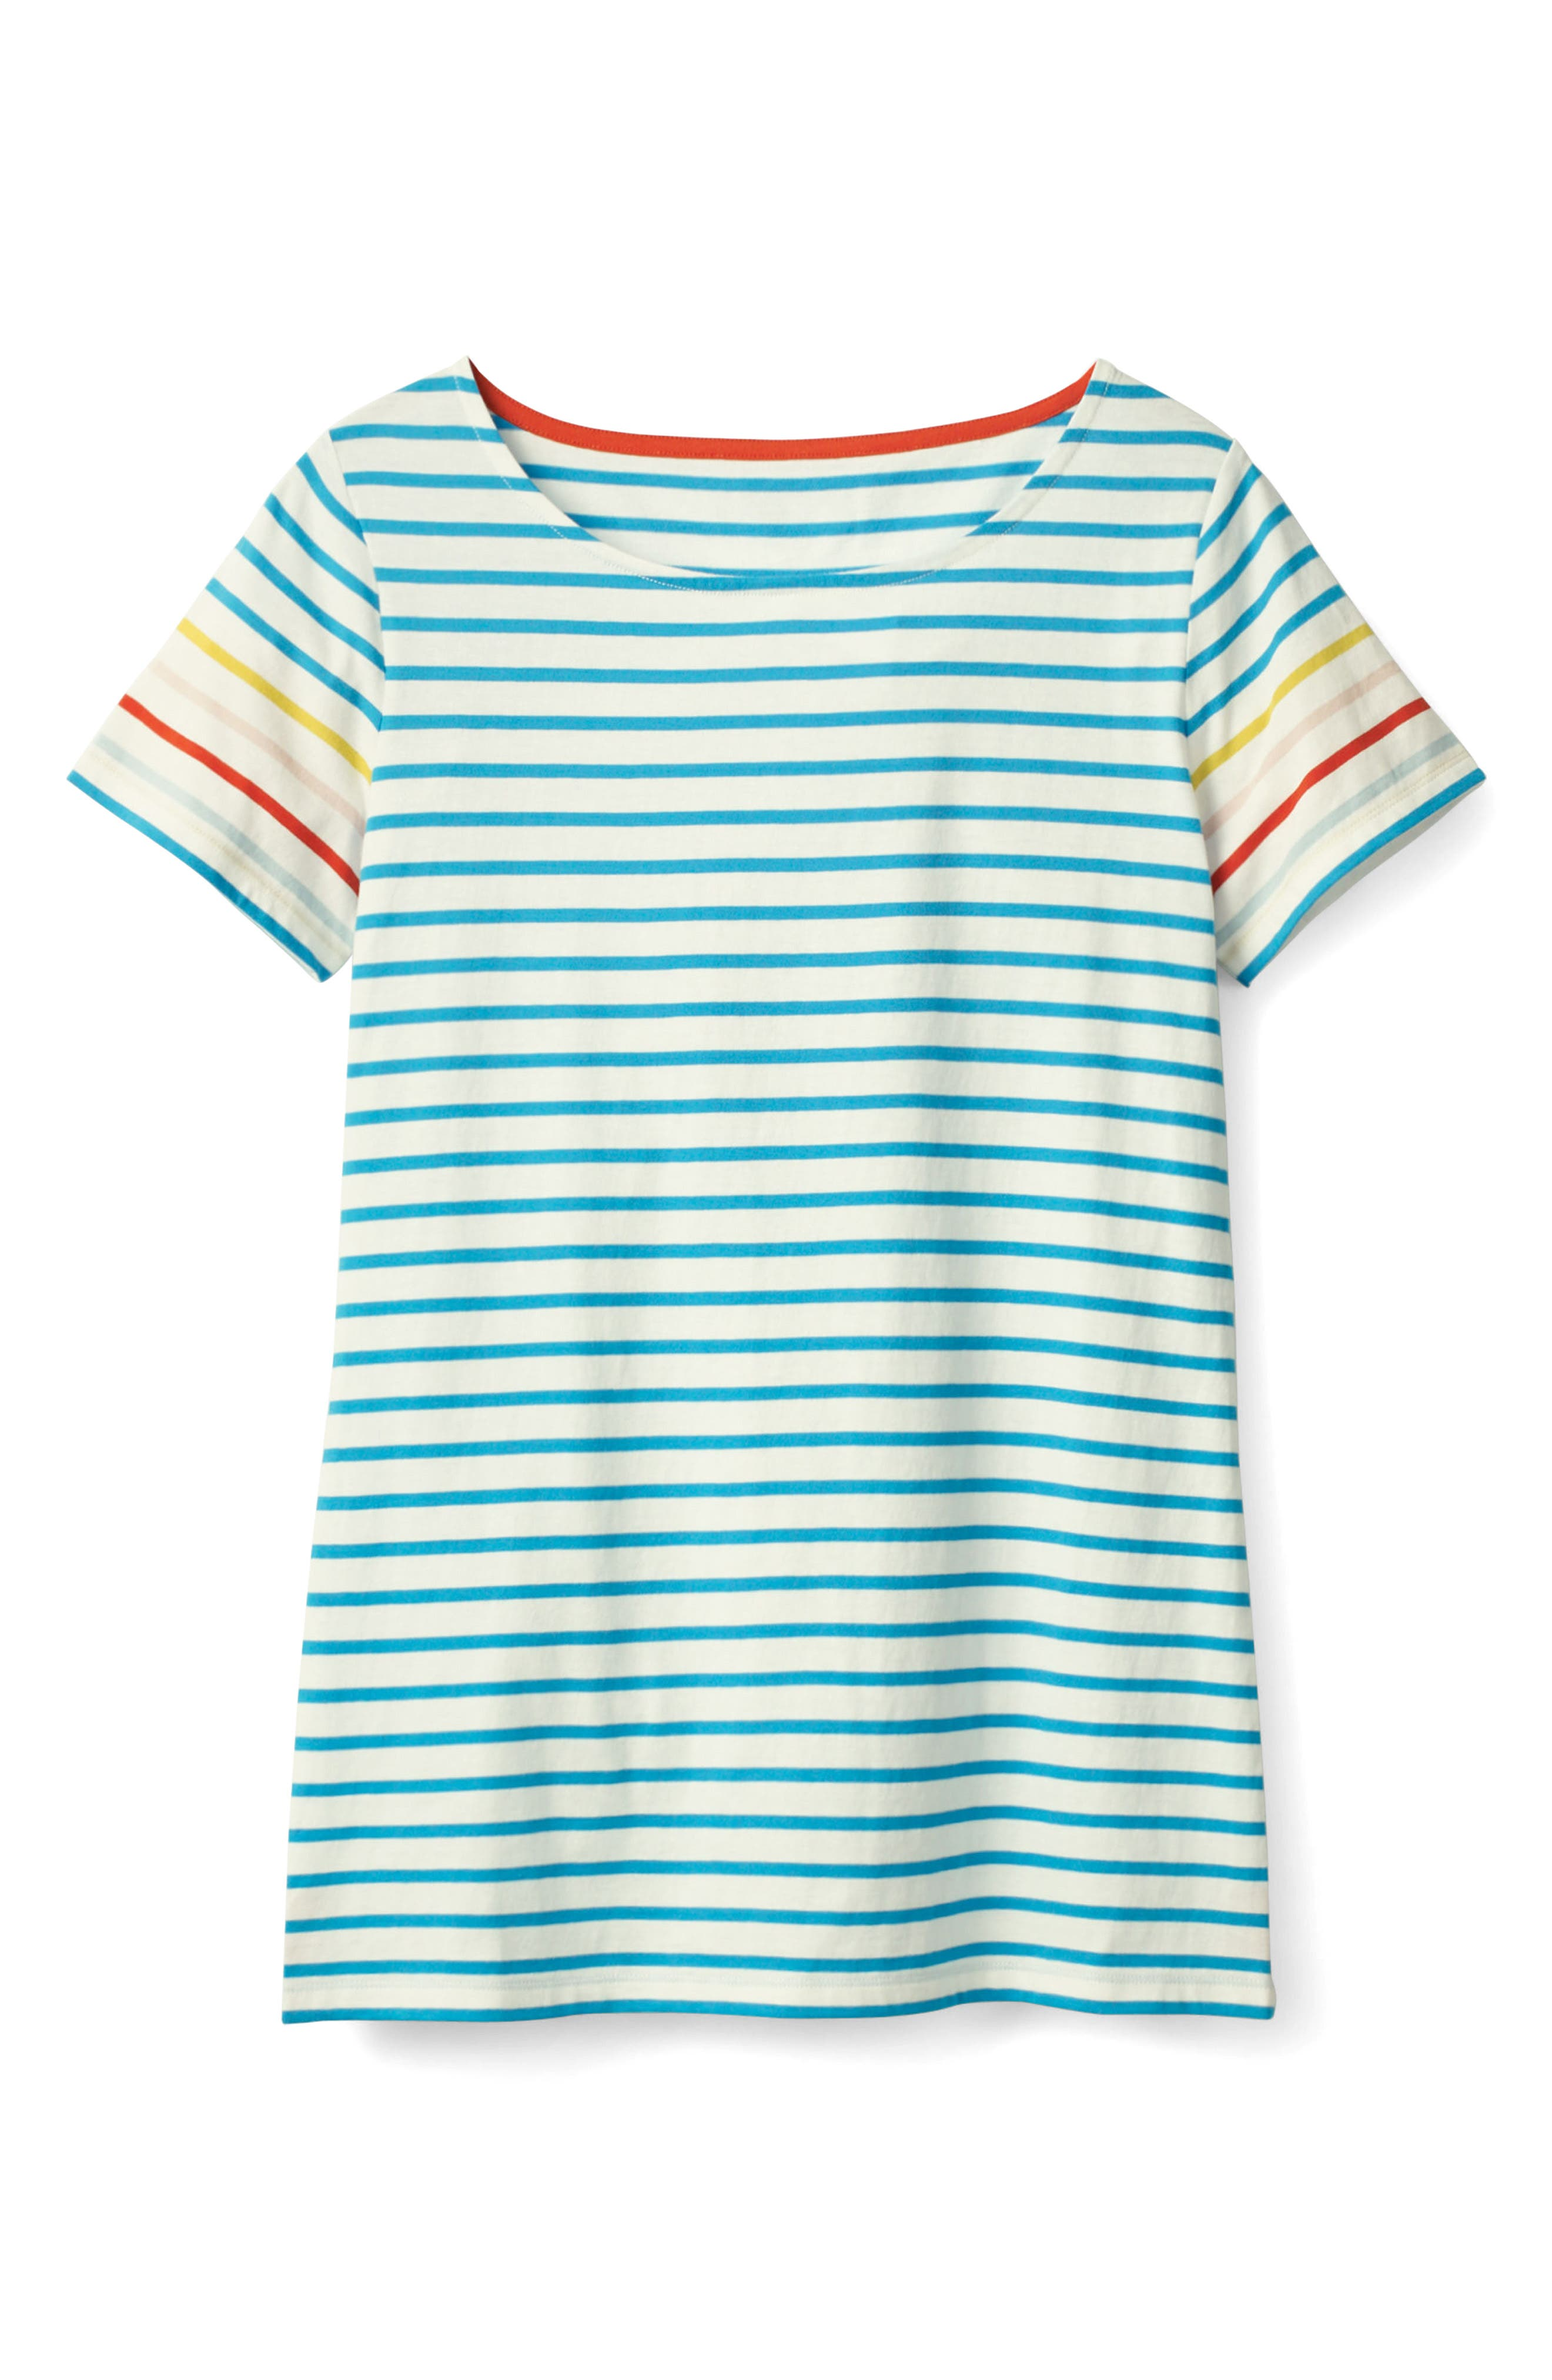 Breton Short Sleeve Stripe Cotton Top,                             Alternate thumbnail 4, color,                             454